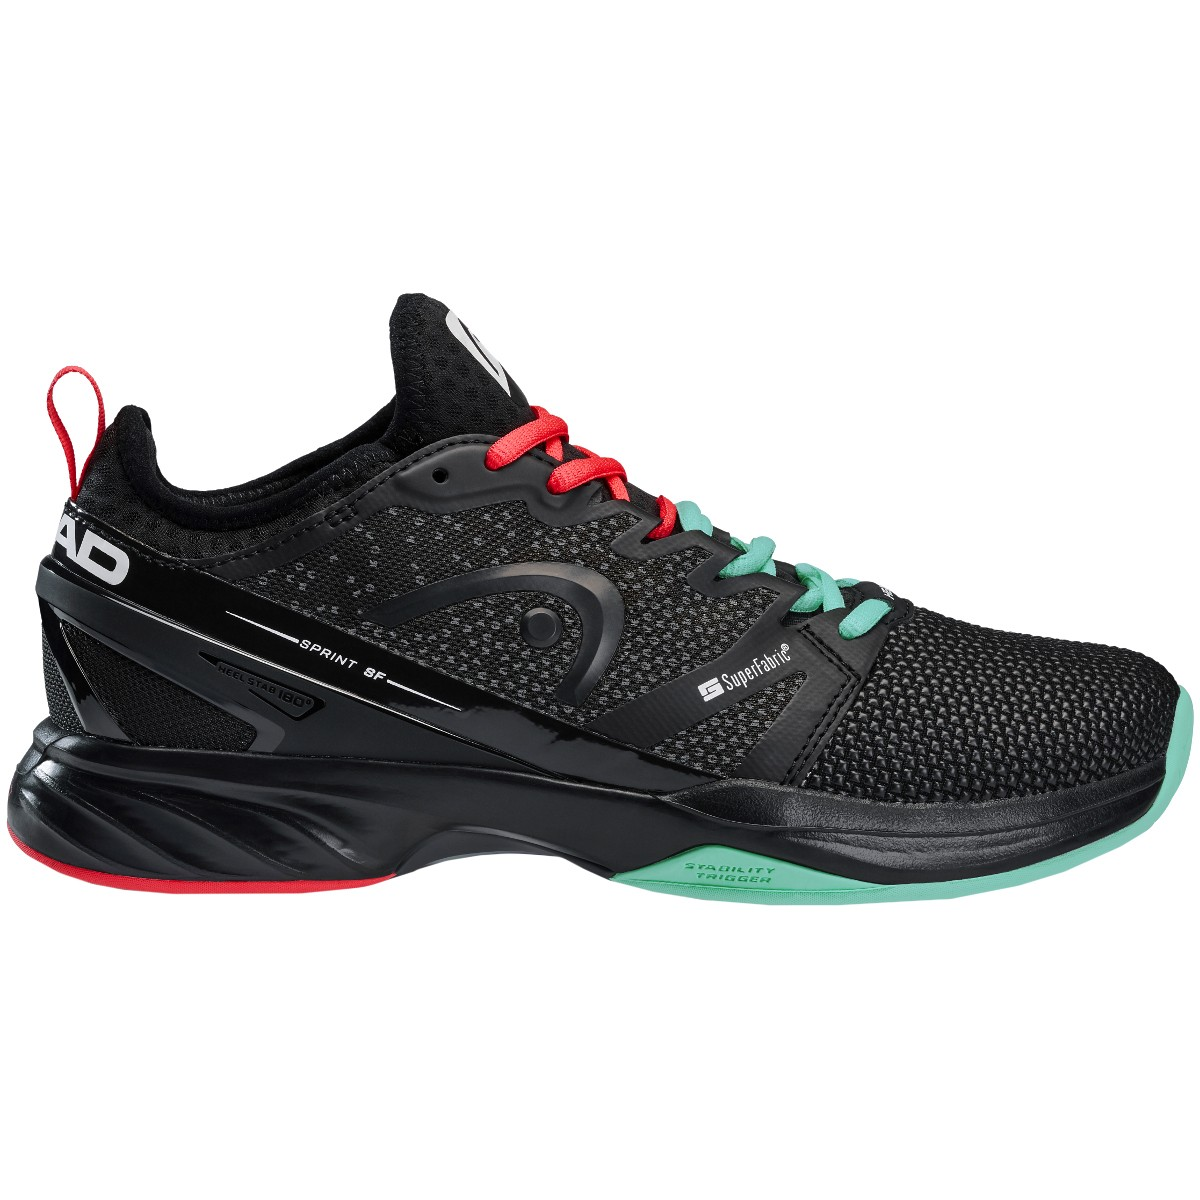 CHAUSSURES HEAD SPRINT SUPERFABRIC TOUTES SURFACES